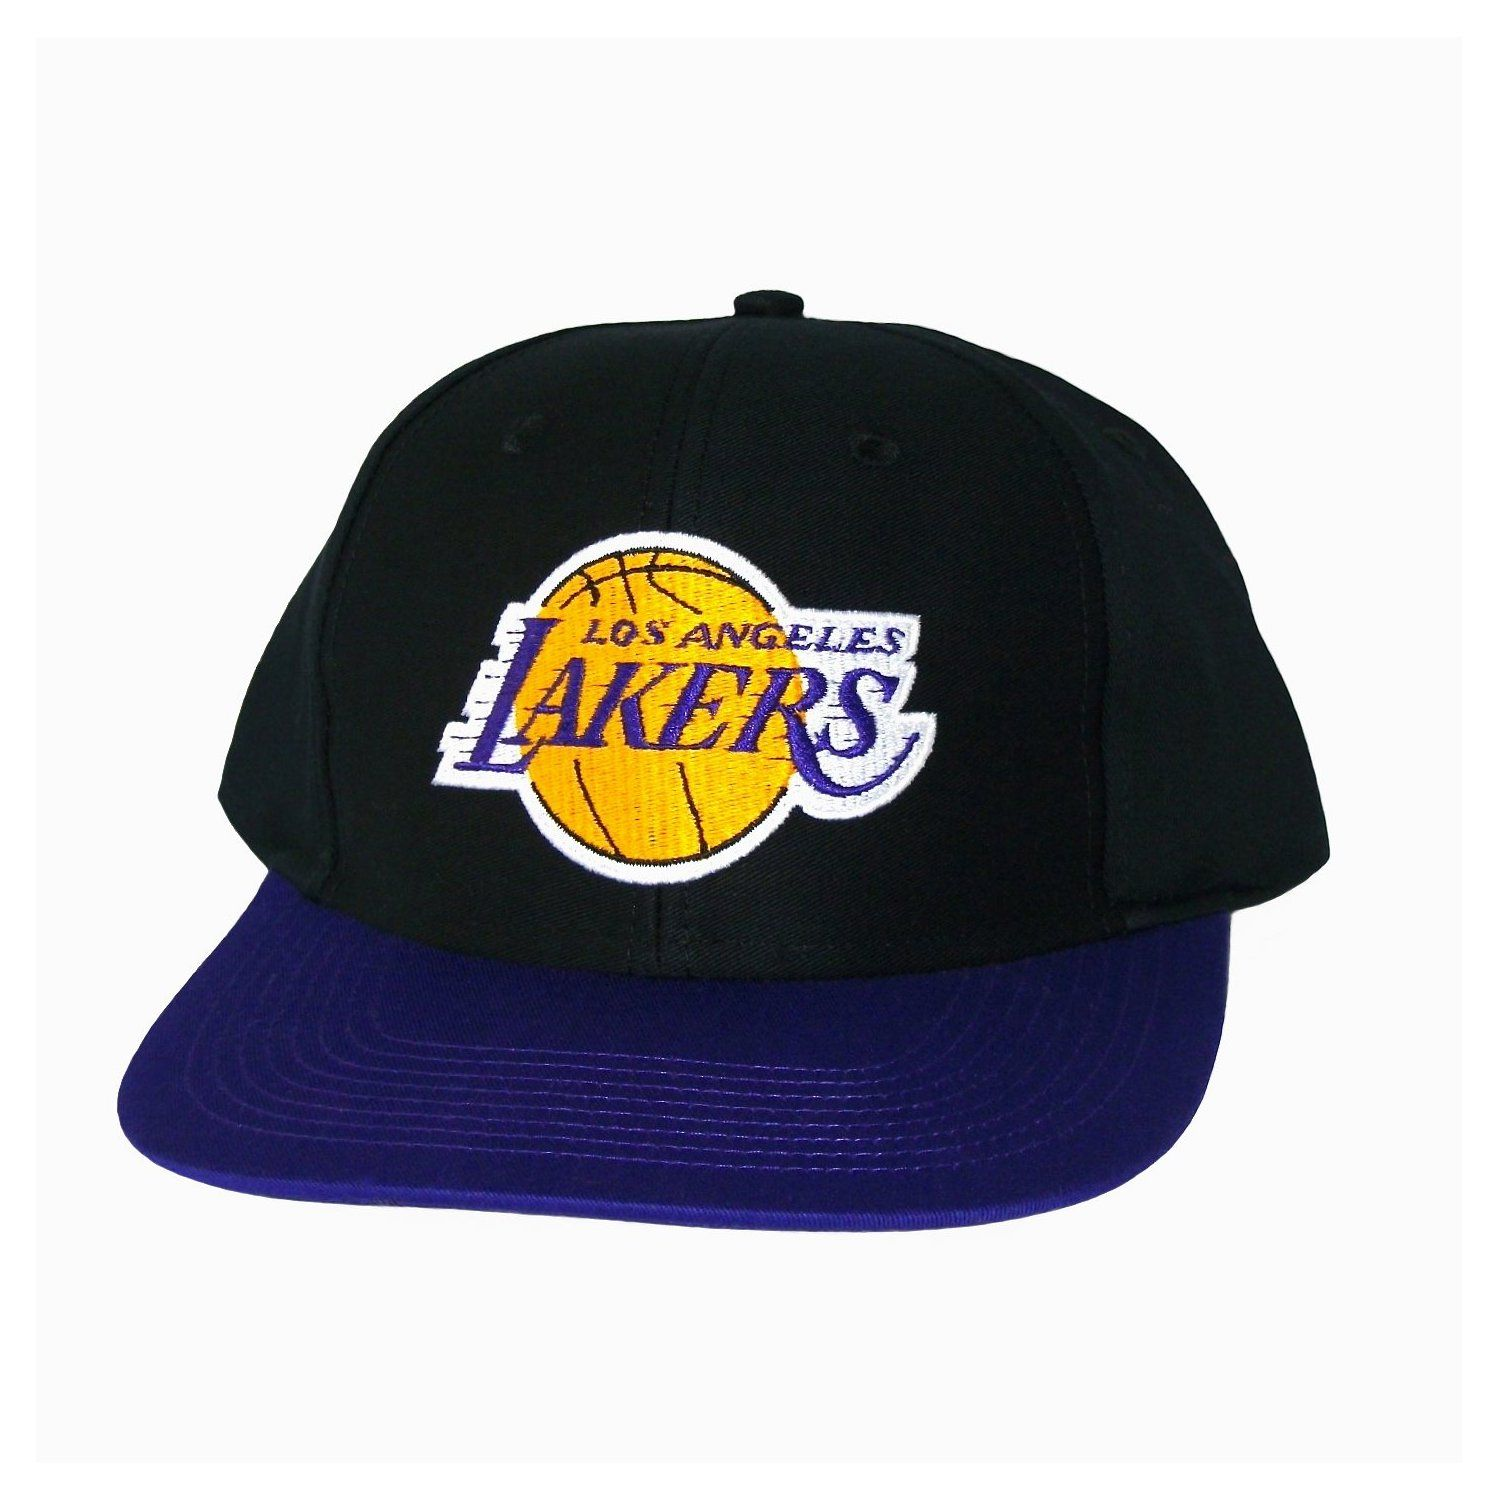 4645cf66f232b LOS ANGELES LAKERS Retro Old School Snapback Hat - NBA Cap - 2 Tone Black Purple   Amazon.co.uk  Sports   Outdoors